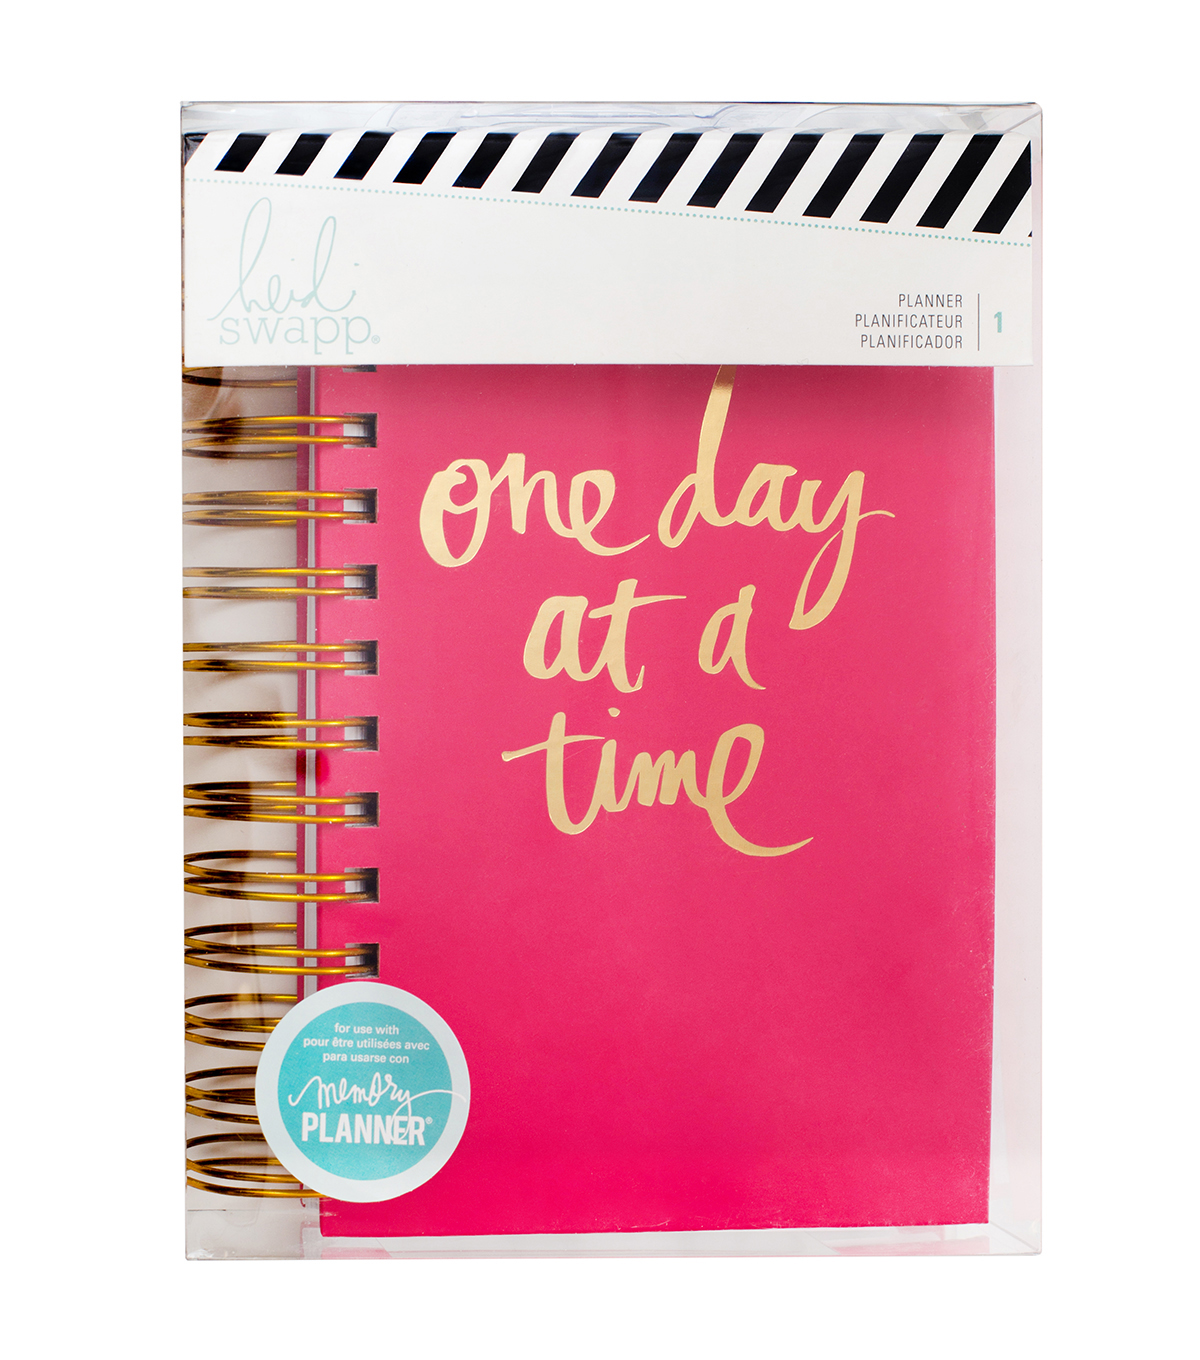 heidi swapp planner one day at a time travel and memory planner